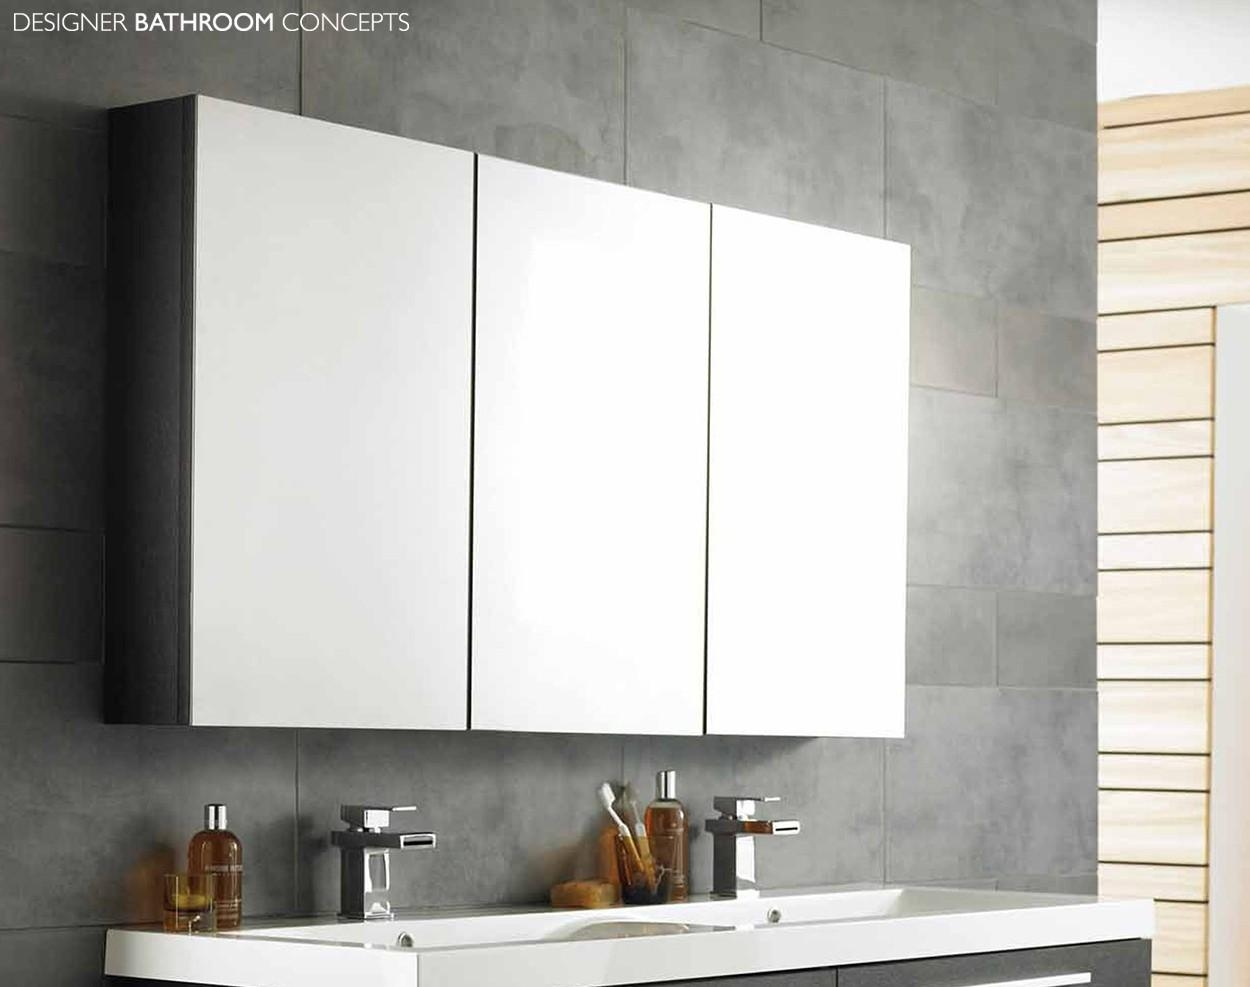 Bathroom Cabinets : Mirror Cabinet For Bathroom Cabinets With For Bathroom Cabinets Mirrors (View 12 of 20)